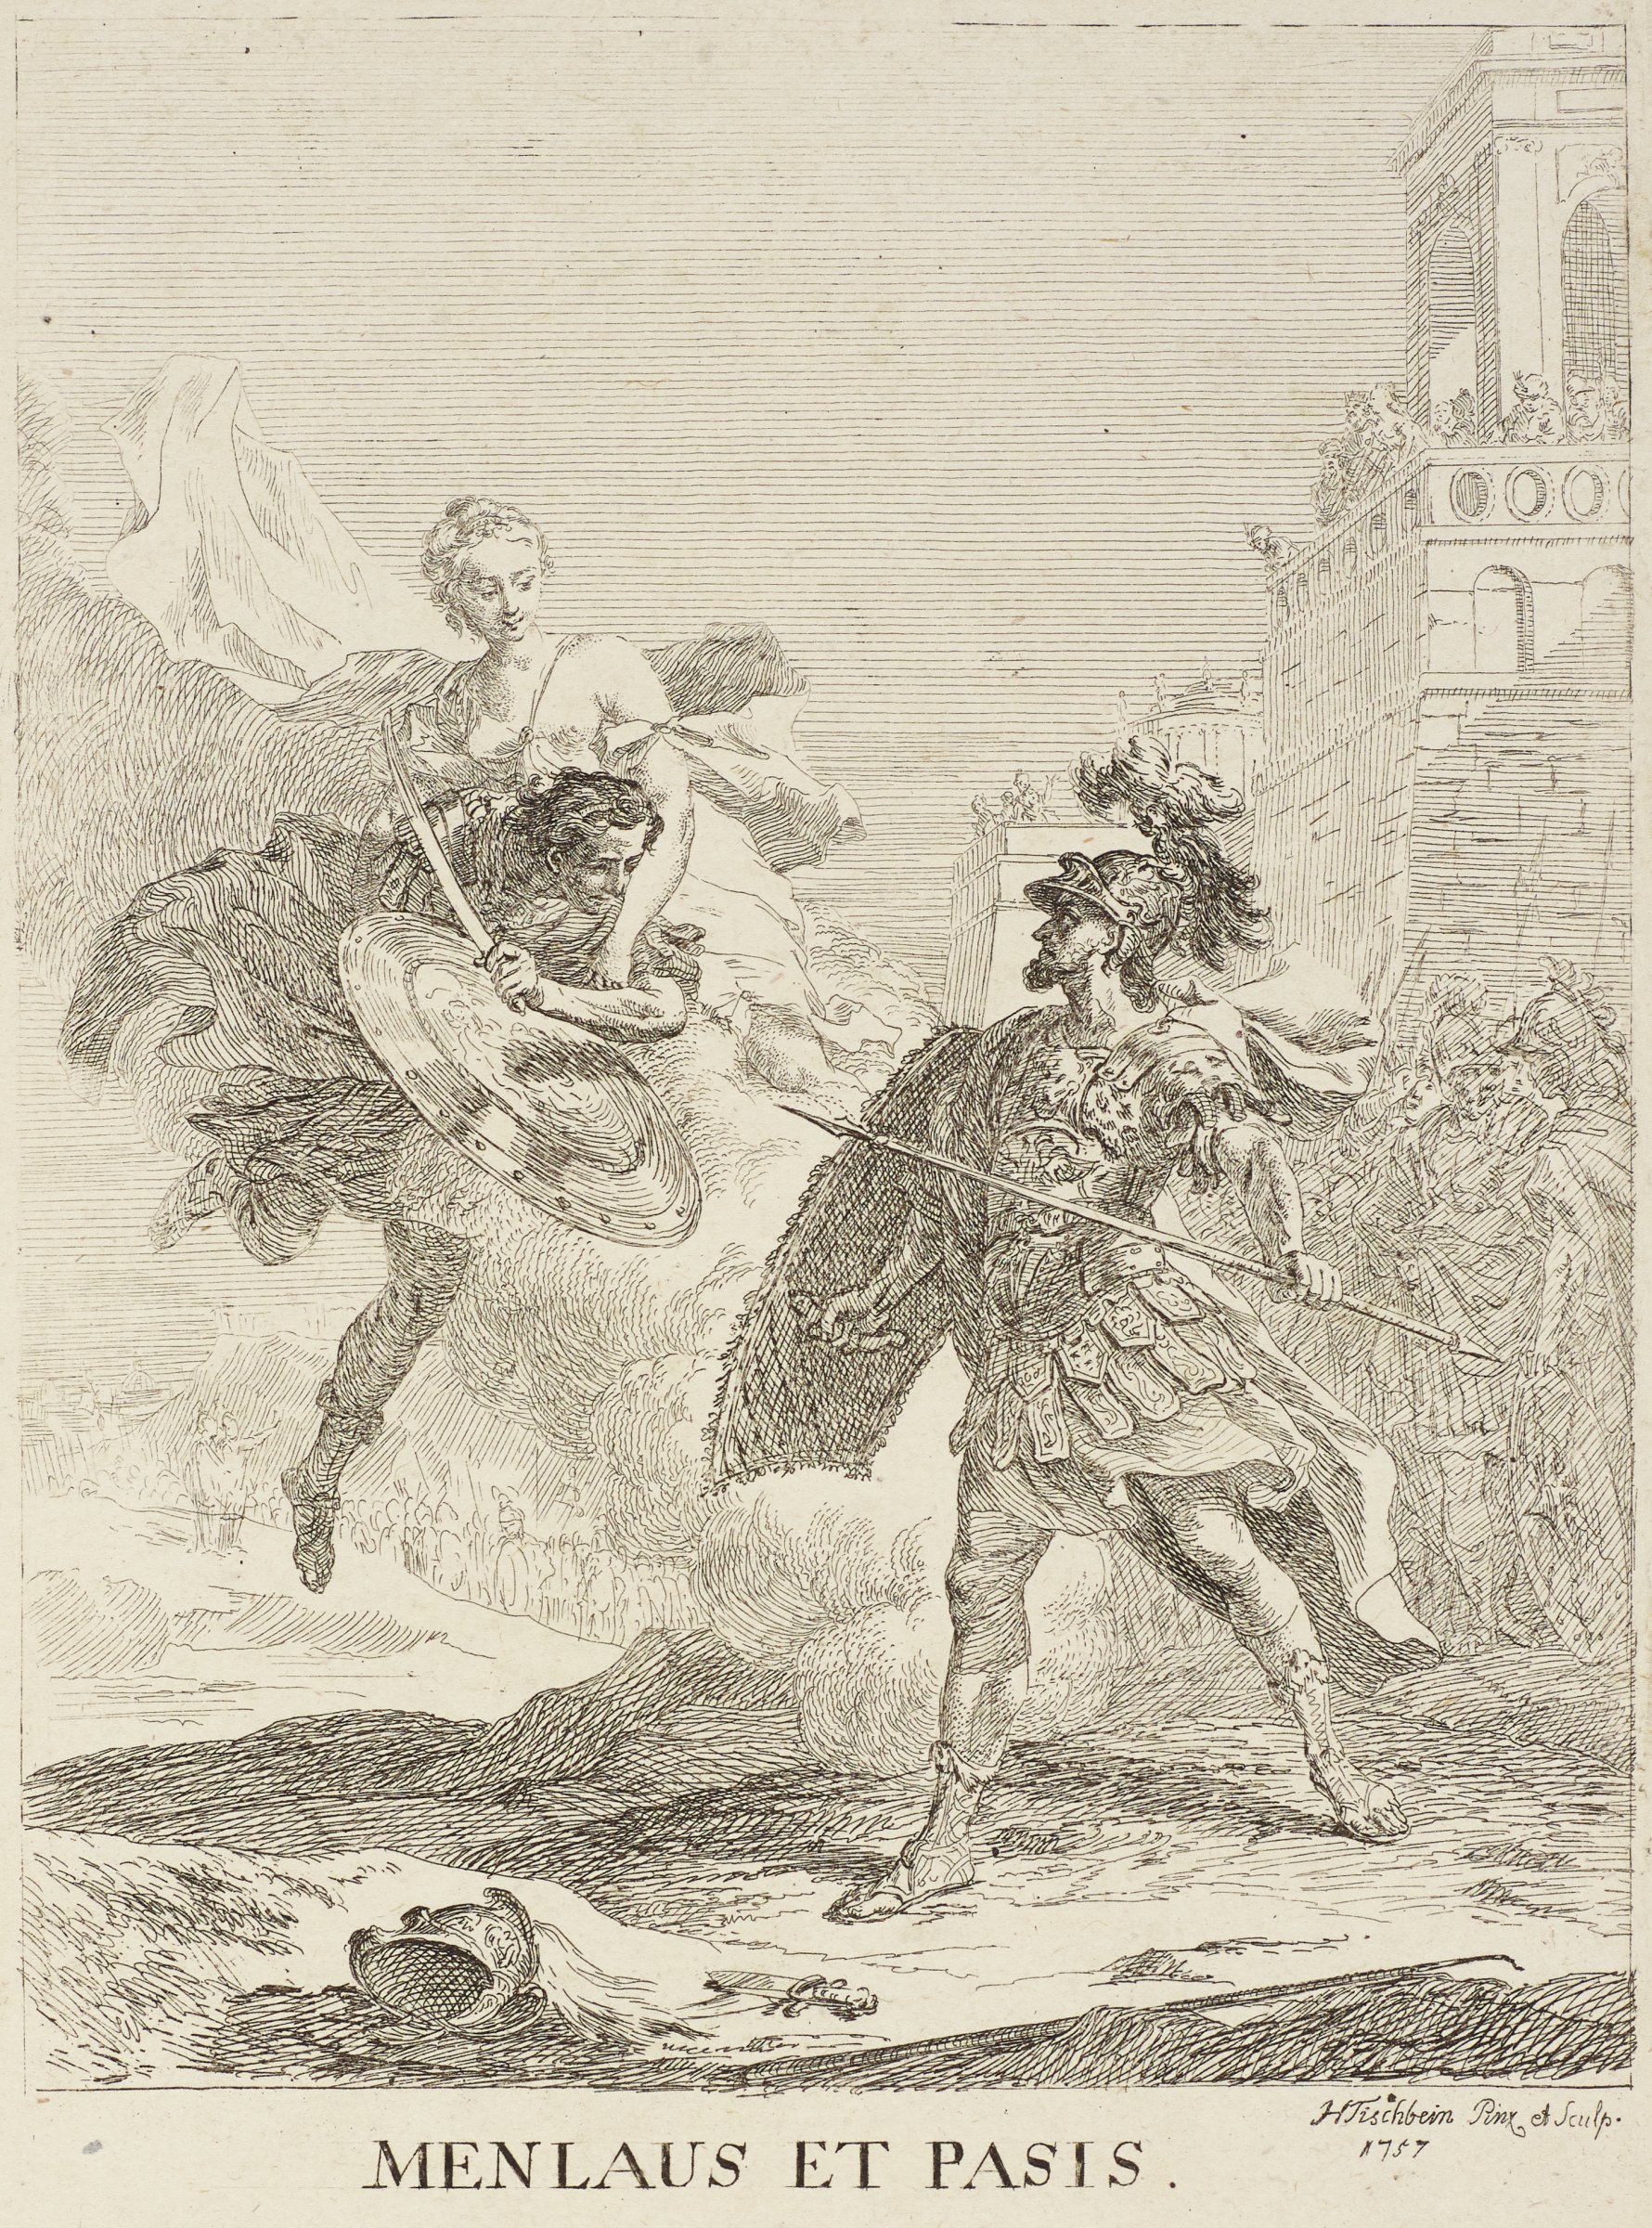 Two armed soldiers fight one another in the center of the scene. The soldier on the left is held by a goddess and lifted upwards.